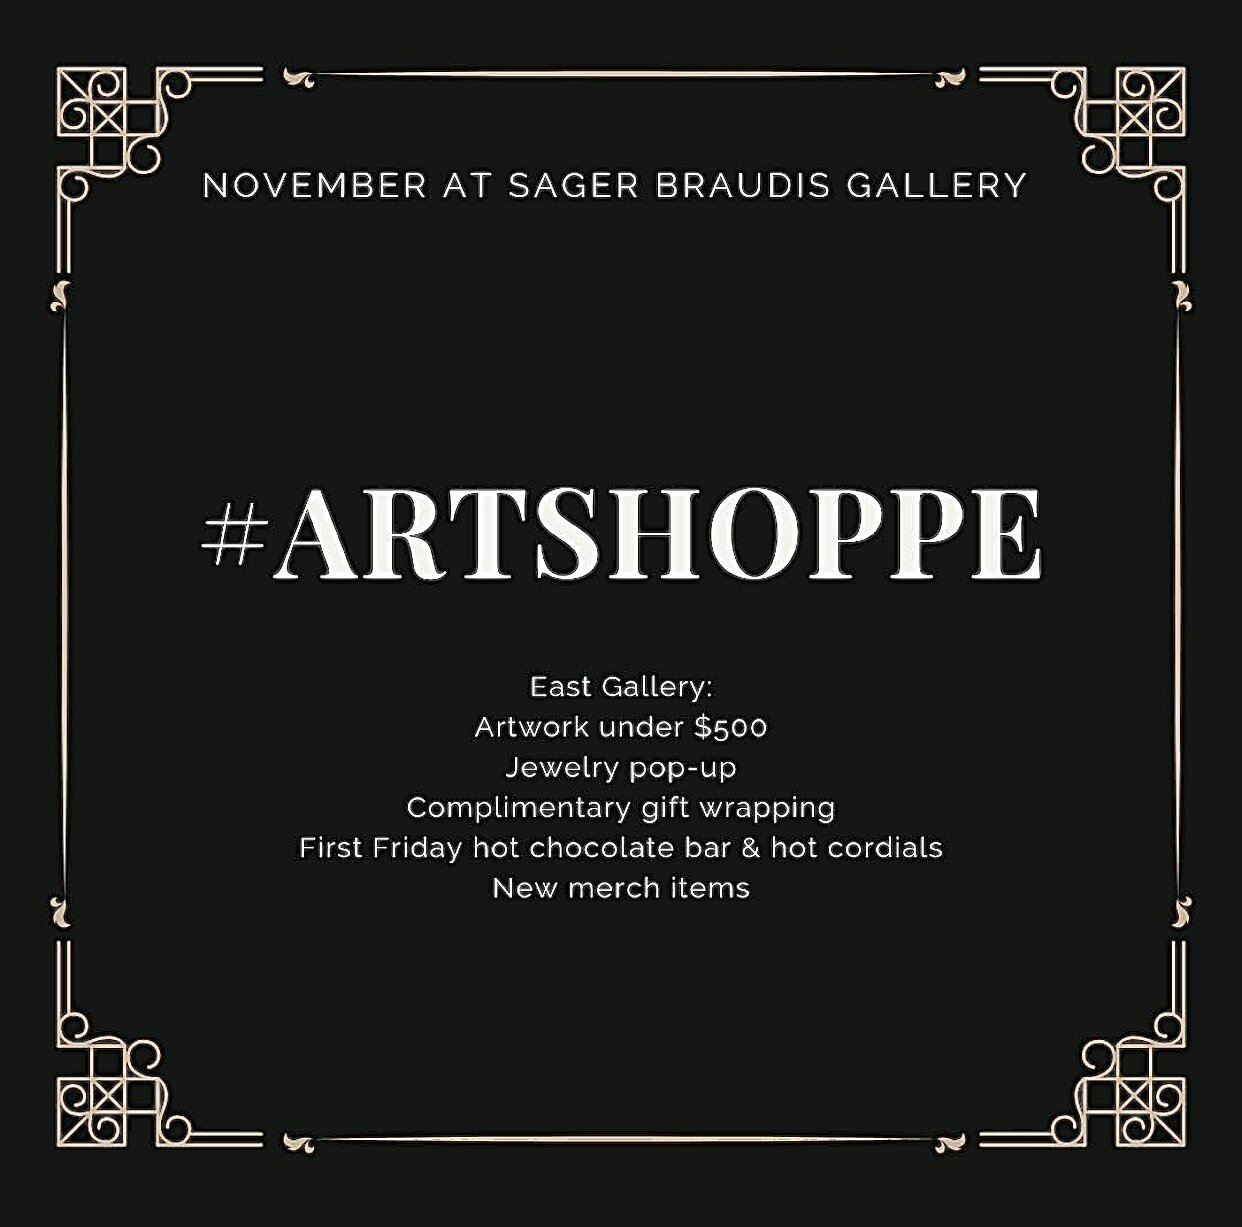 As the holidays approach Sager Braudis' East Gallery will become an 'ARTSHOPPE'! Six of my paintings will up for sale as well as other original artworks created by talented artists. Make sure to stop by Sager Braudis, the first Friday of November and purchase artwork, stocking stuffers, and jewelry that you can gift this holiday season!